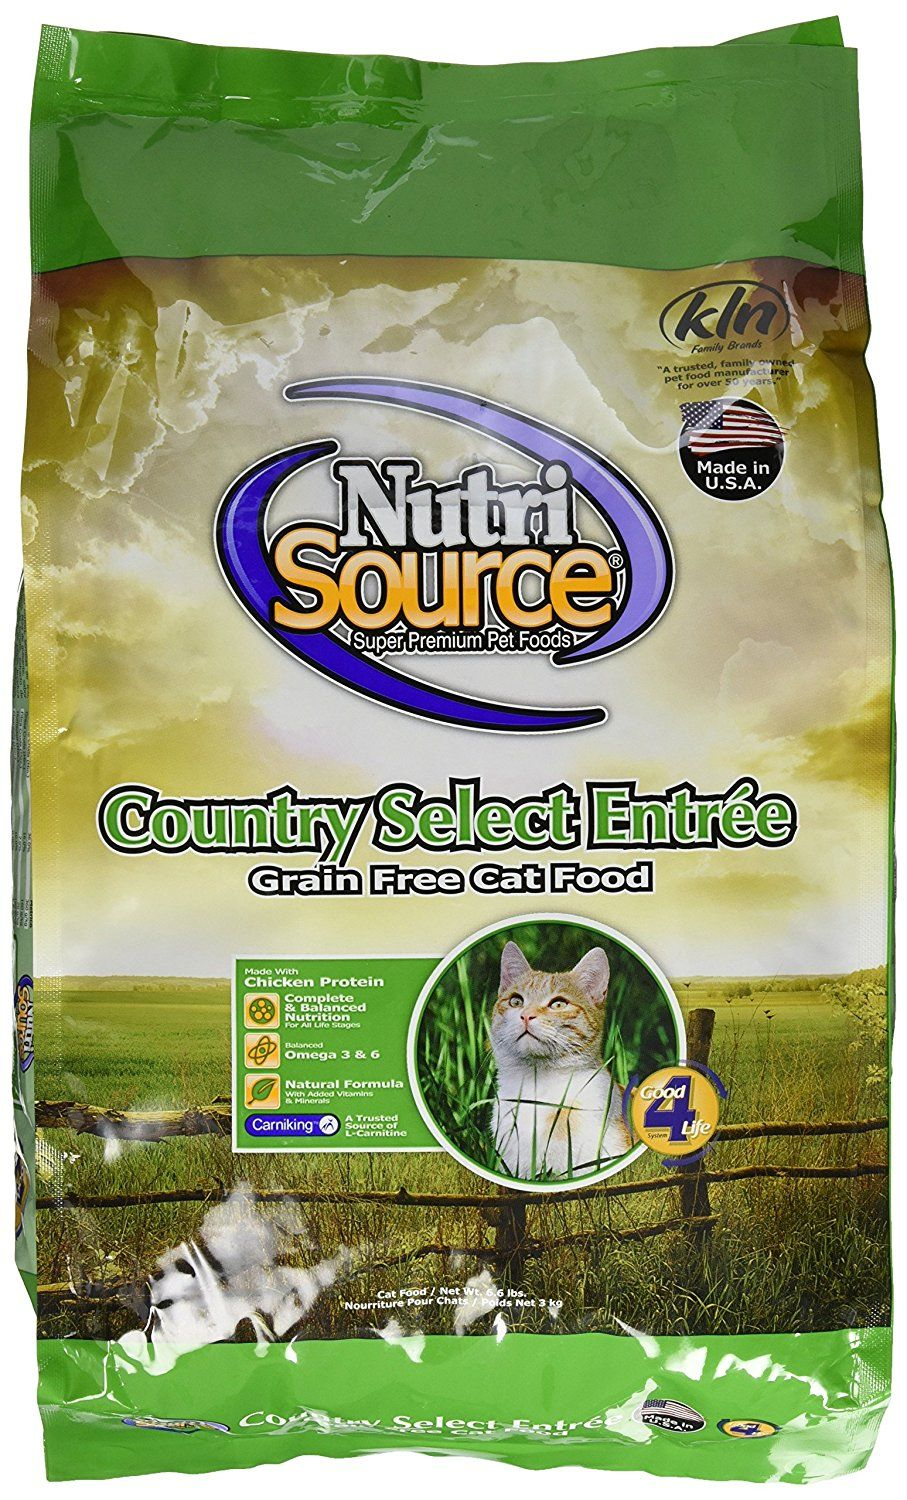 Nutrisource Grain Free Country Select EntrǸe >>> Special